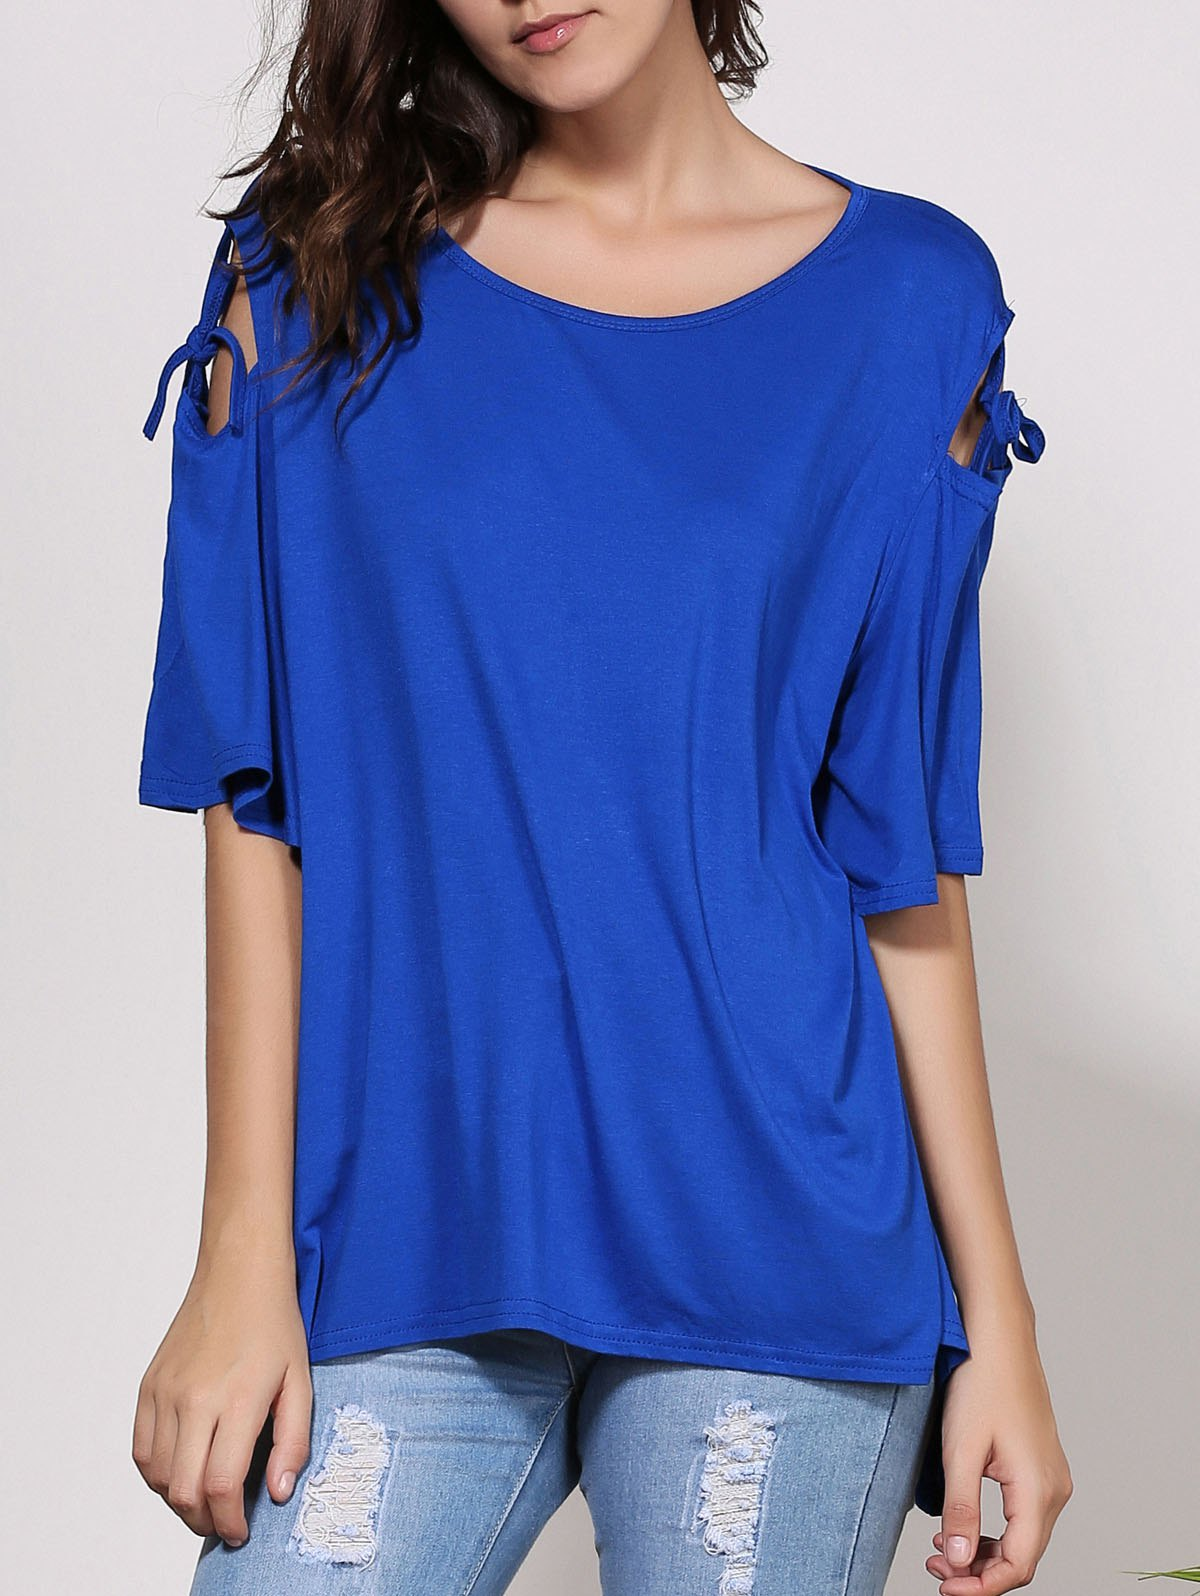 Fashionable Women's Scoop Neck Solid Color Cut Out Short Sleeve T-Shirt - BLUE XL